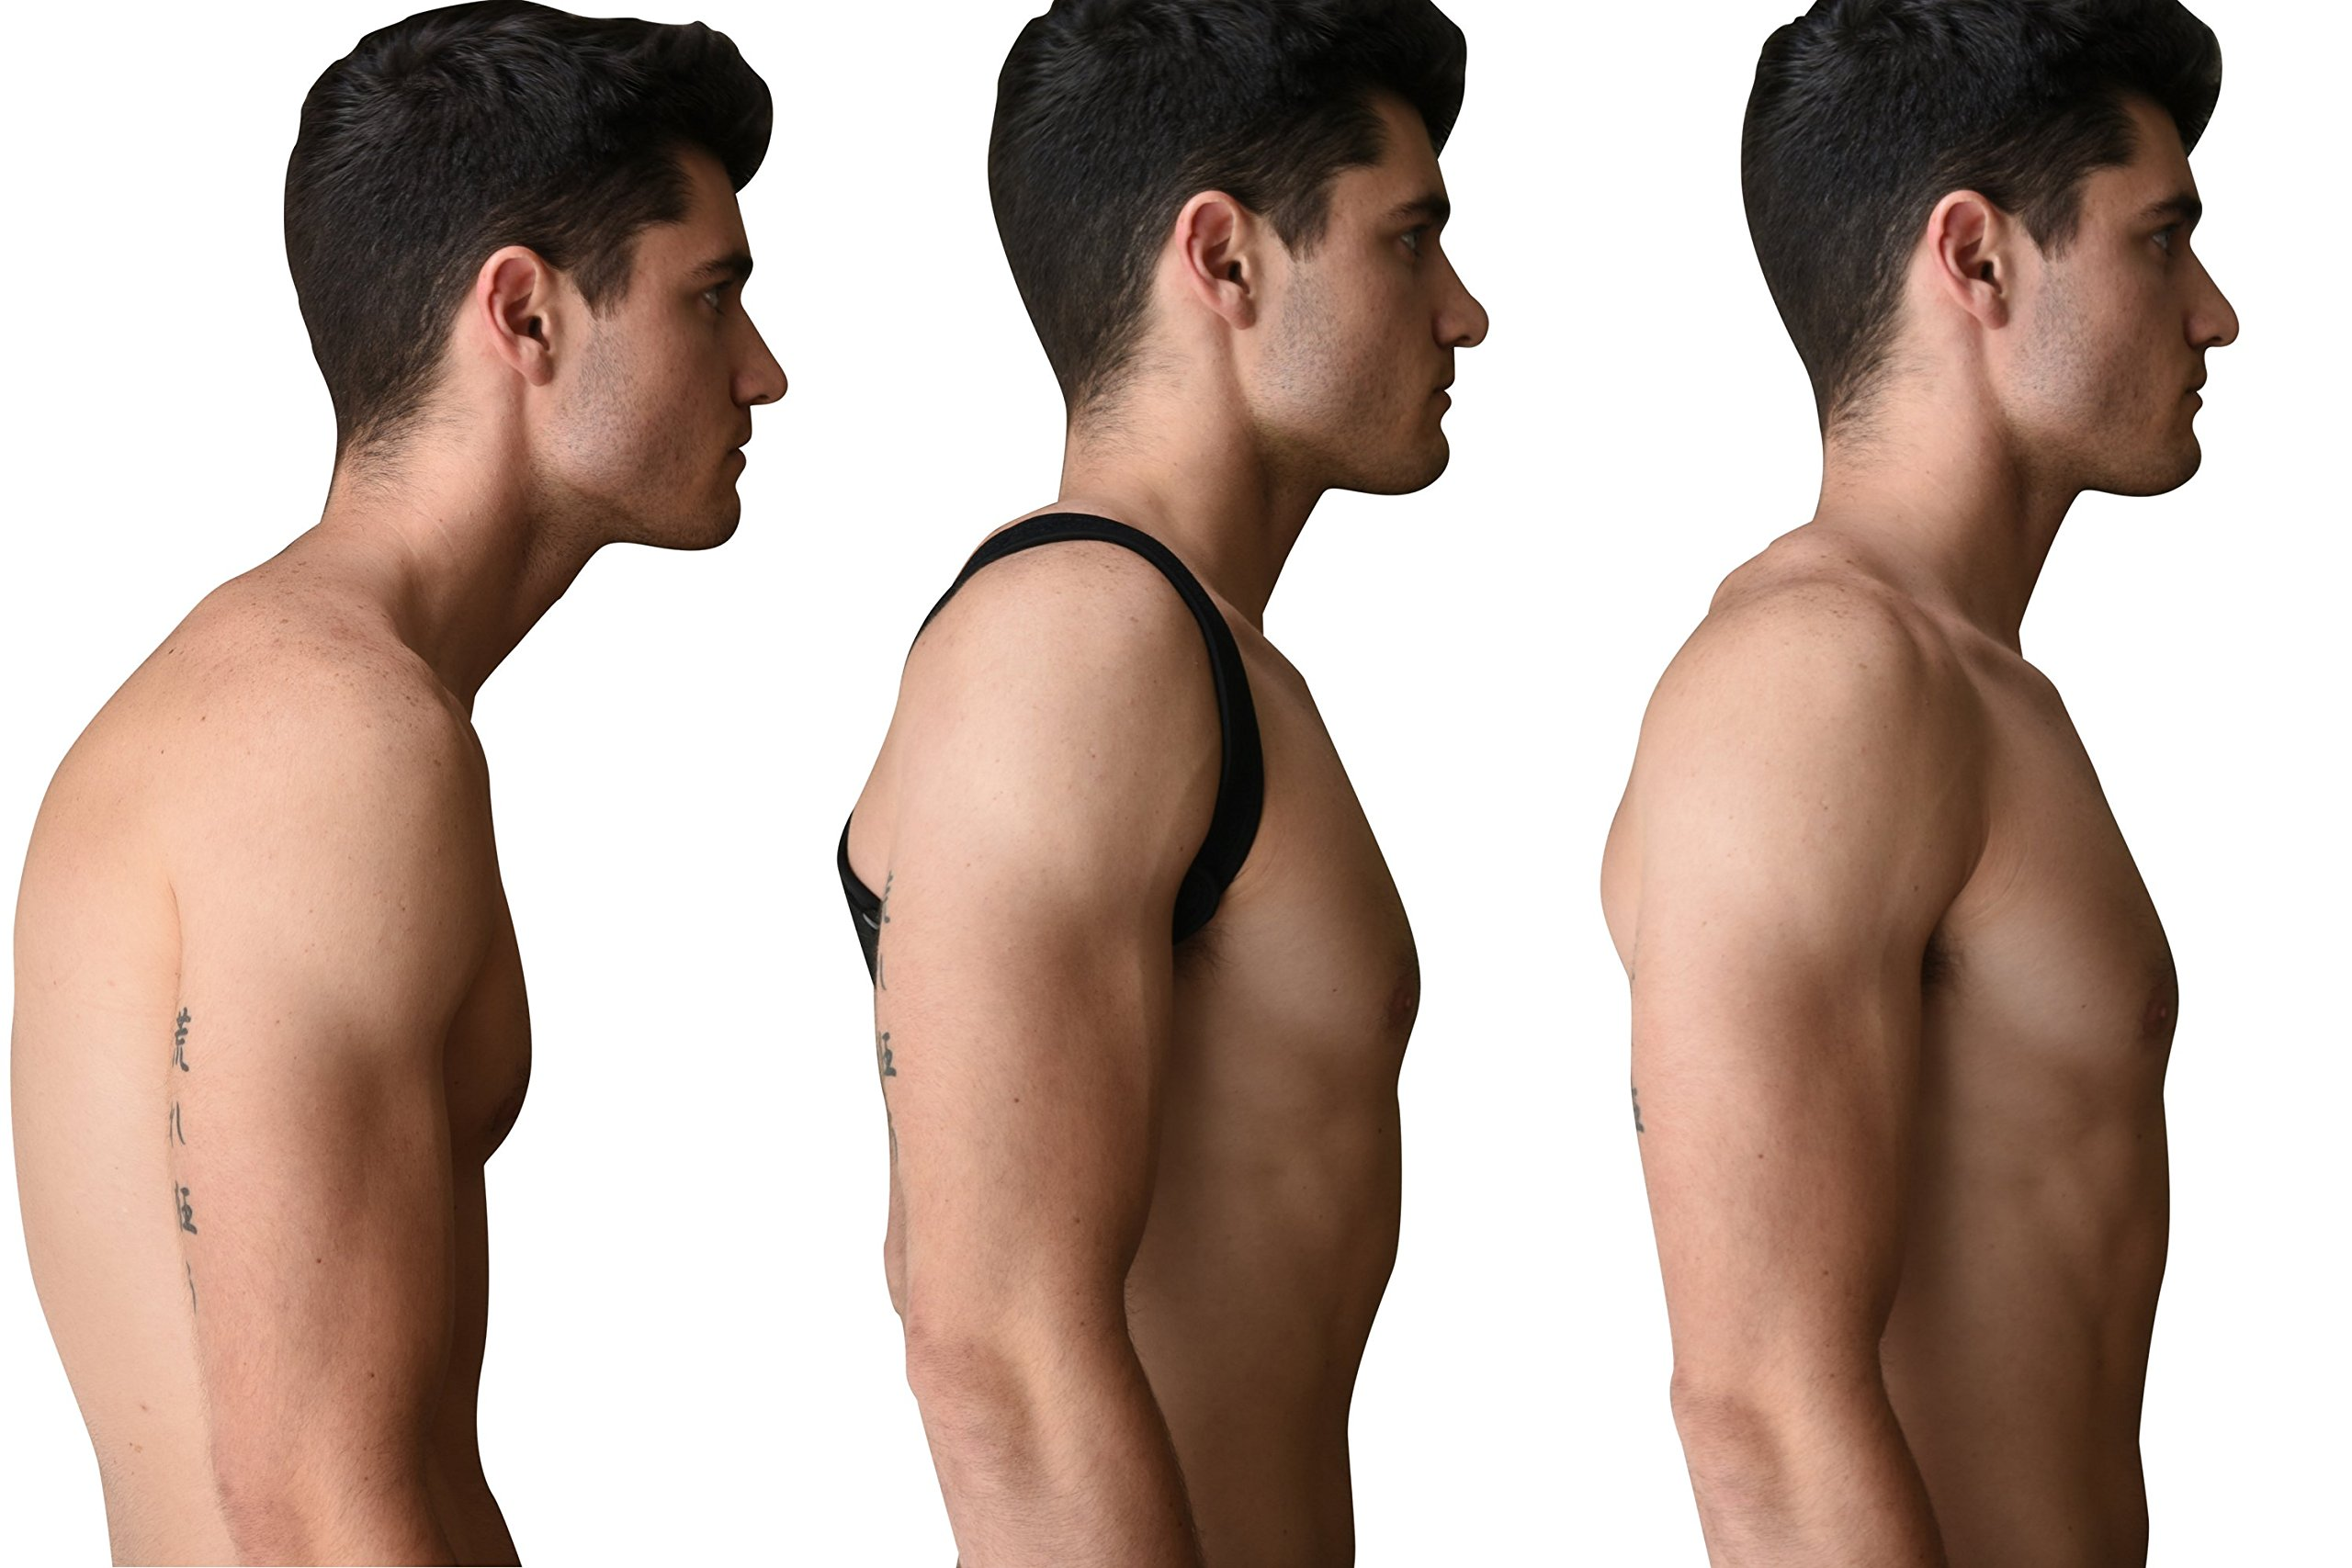 Back Posture Corrector by Atlus Strong - Upper Back and Clavicle Support Brace - Relieves Back and Shoulder Pain - Improves Posture Immediately - Adjustable Size - for Men and Women by Atlus Strong (Image #4)